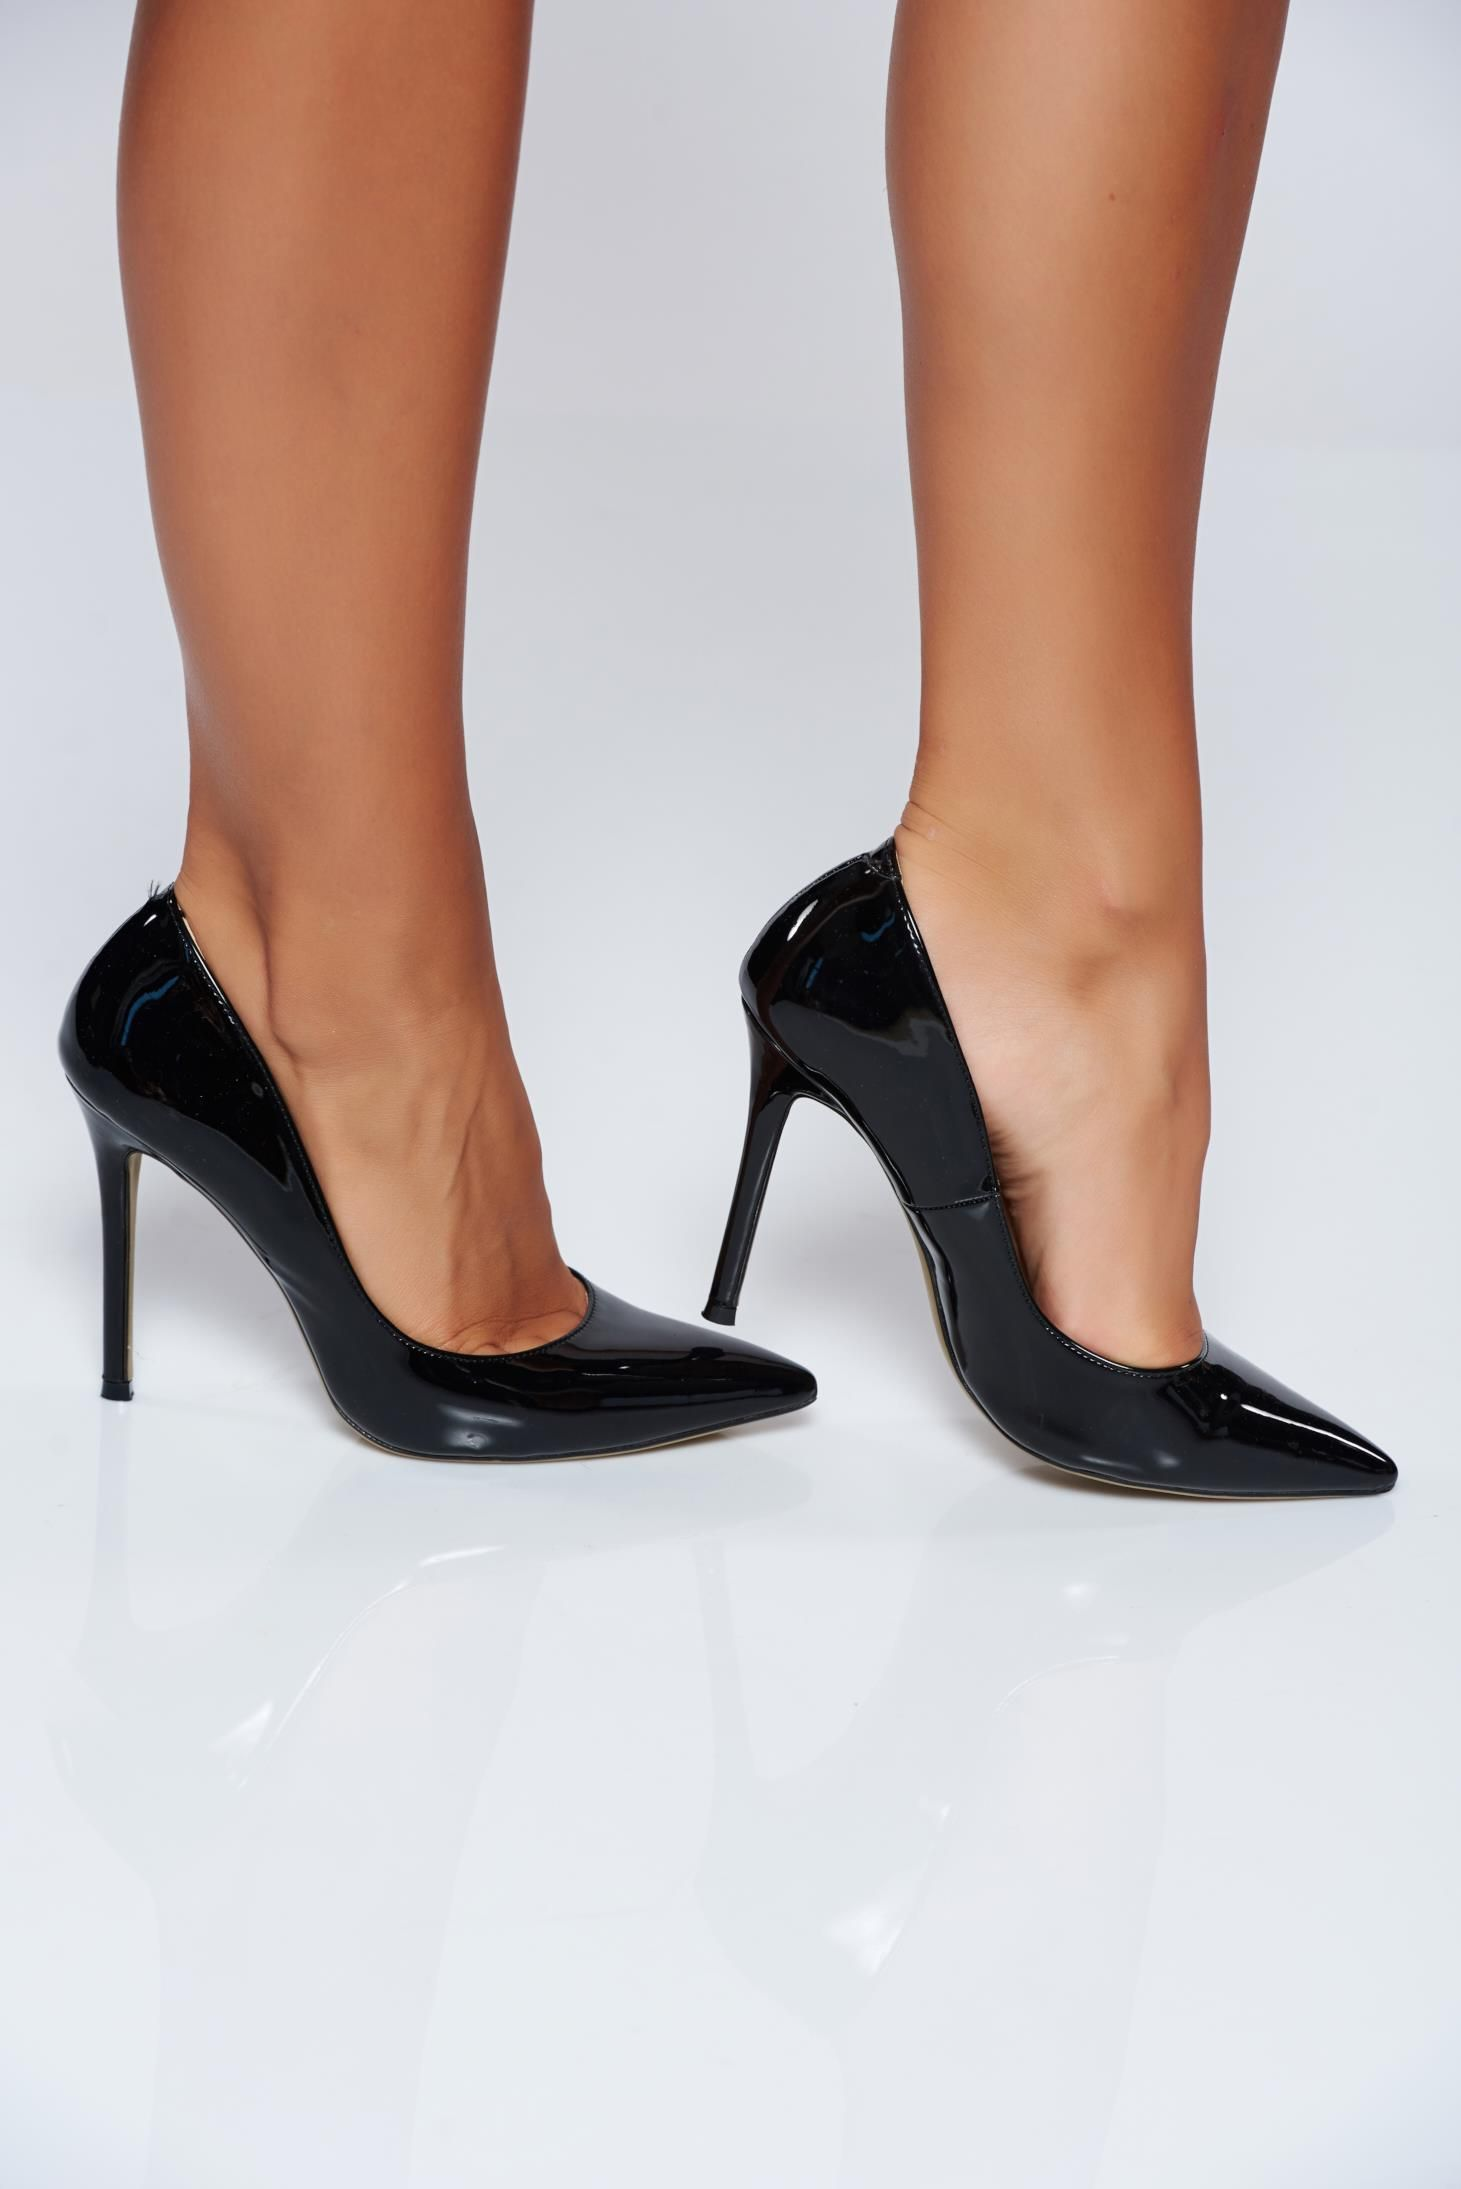 c5beeb6766491 Black high heels elegant shoes with slightly pointed toe tip, insole  material: ecological leather, lacquer fabric, women`s shoes, stiletto, high  heels, ...